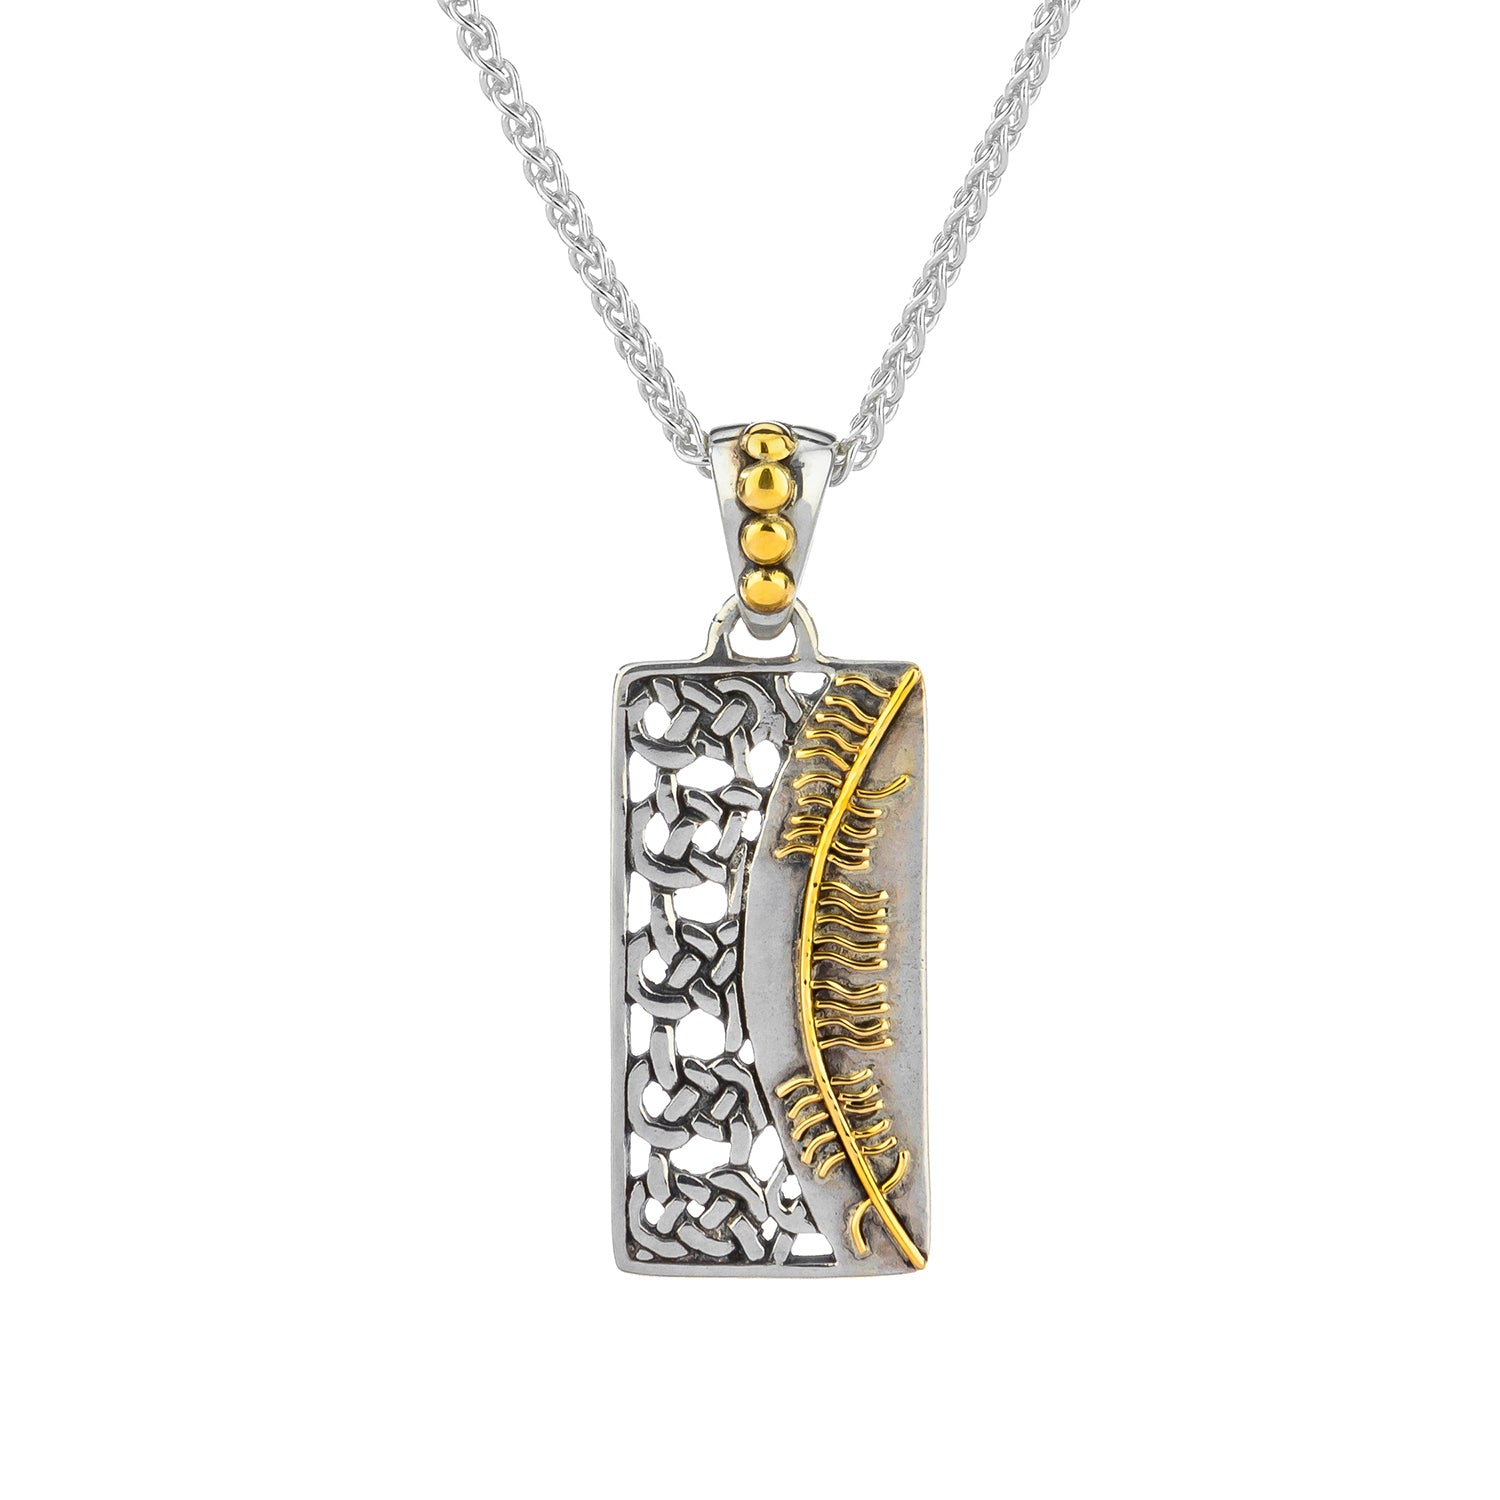 Pendant 18k Ogham Pendant Misneach = Courage from welch and company jewelers near syracuse ny